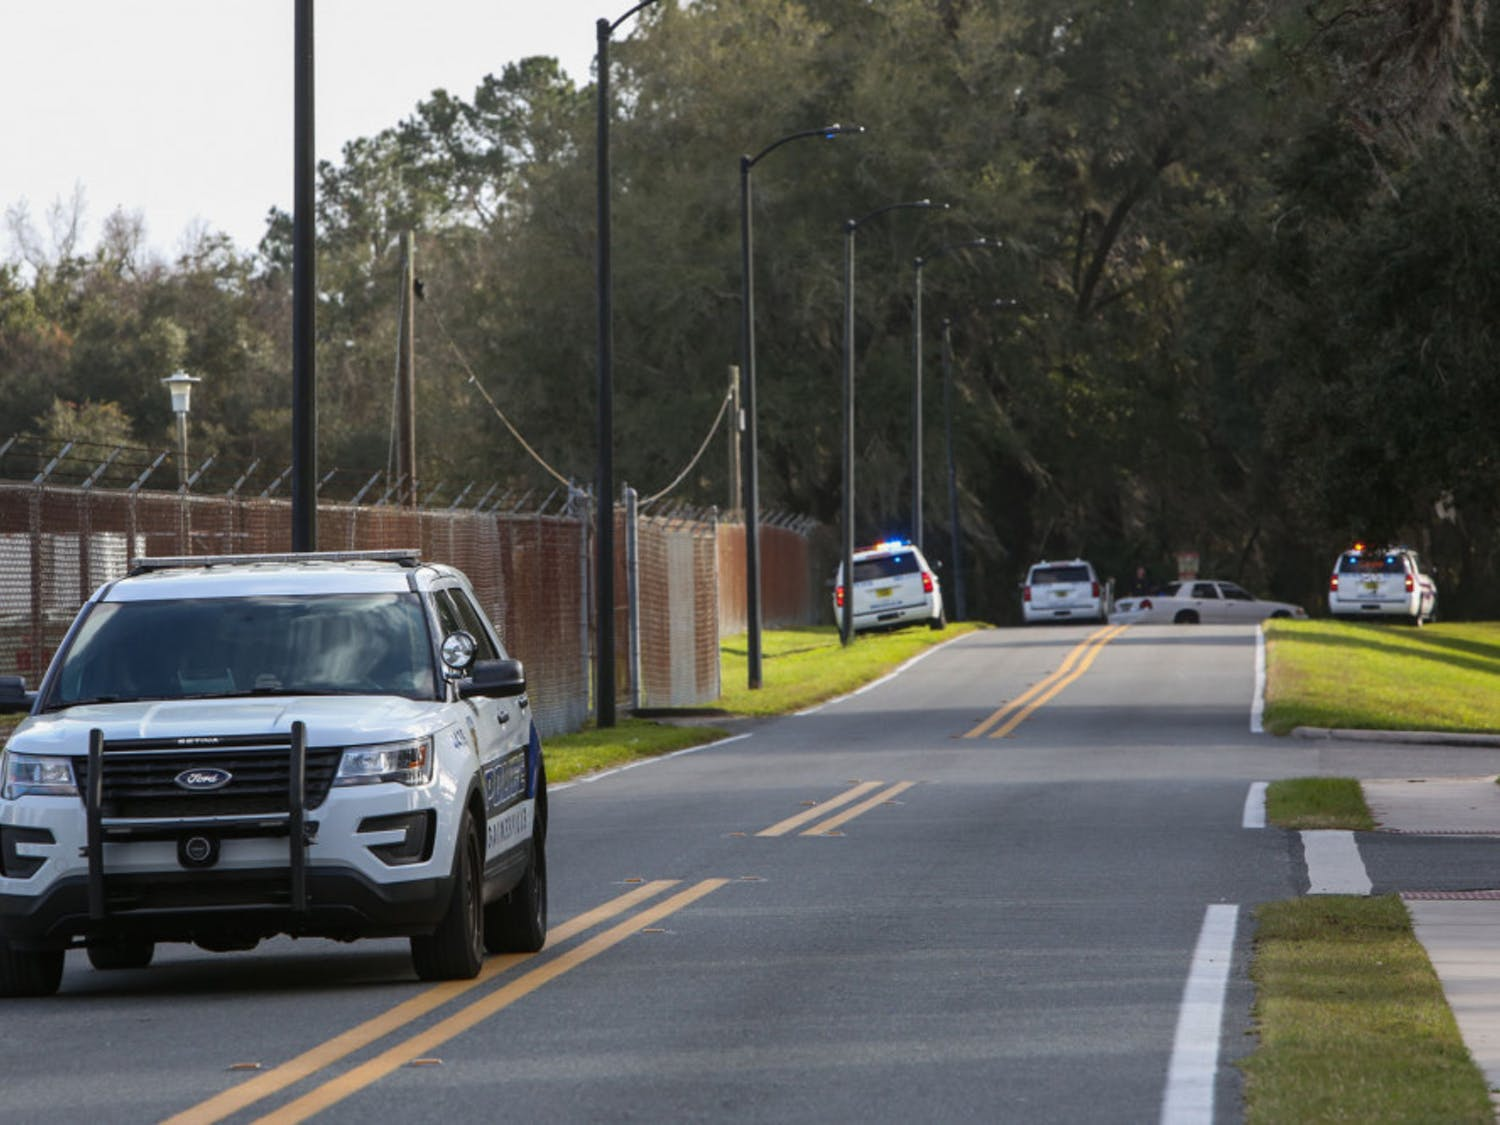 A University of Florida Police Department officer leaves the scene in a vehicle Friday while officers search a wooded area near the UF College of Veterinary Medicine for a suspect reportedly firing a gun at targets.